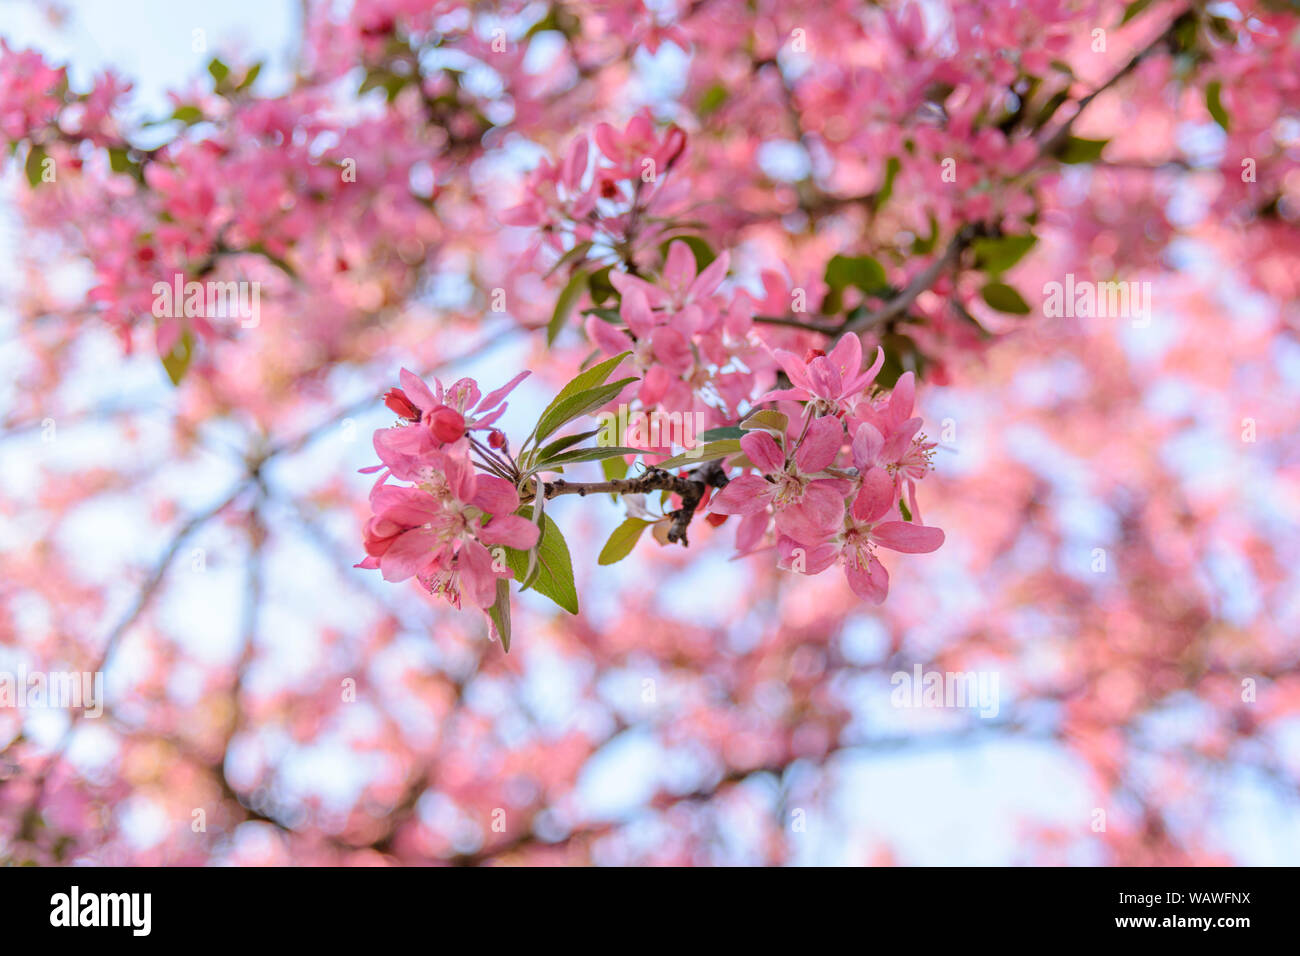 Chinese Branches Flowering Crab Apple Season Blossom Stock Photo